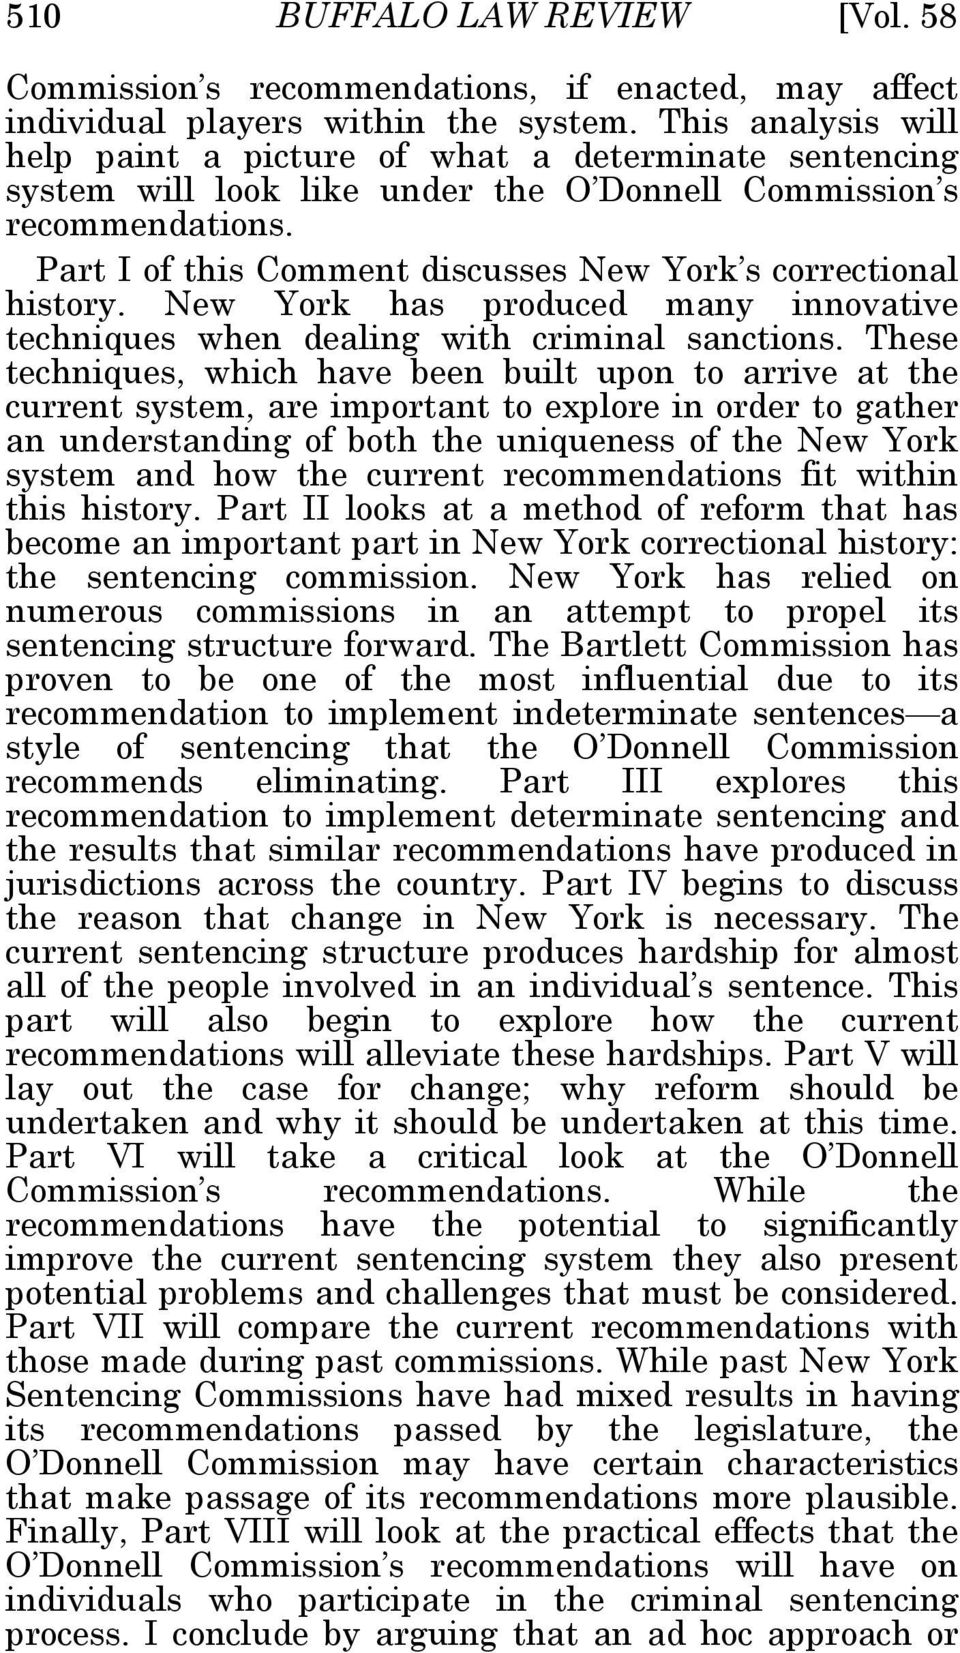 Part I of this Comment discusses New York s correctional history. New York has produced many innovative techniques when dealing with criminal sanctions.